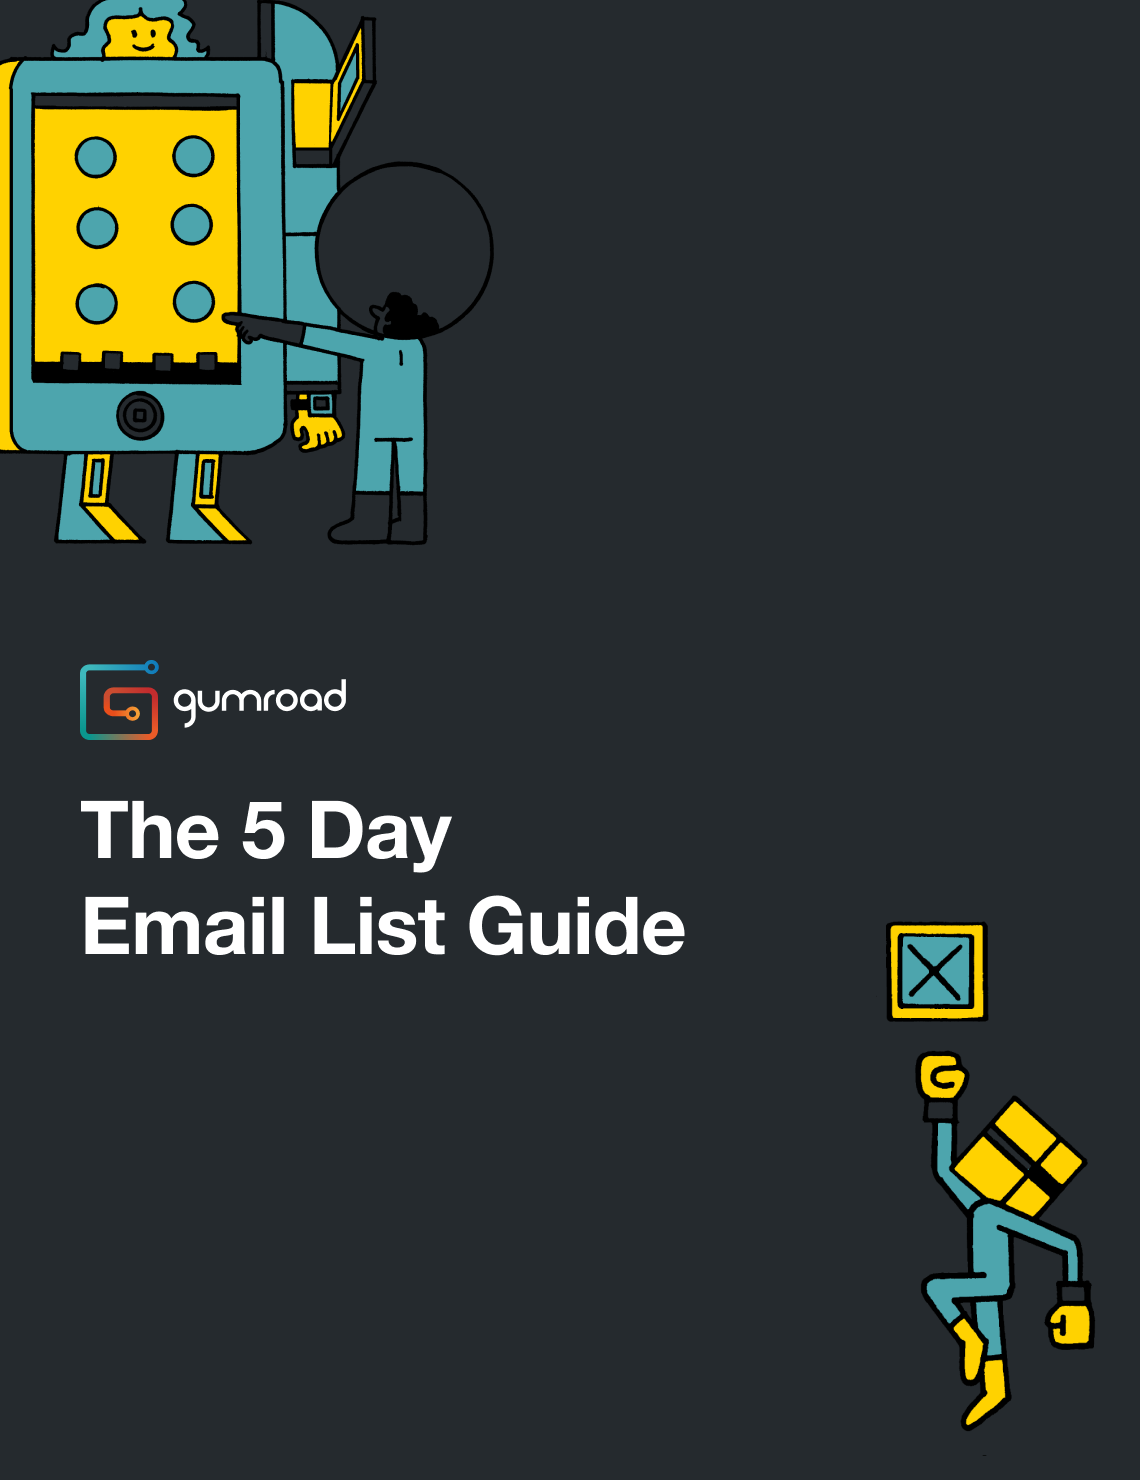 The 5 day email list guide by Gumroad.